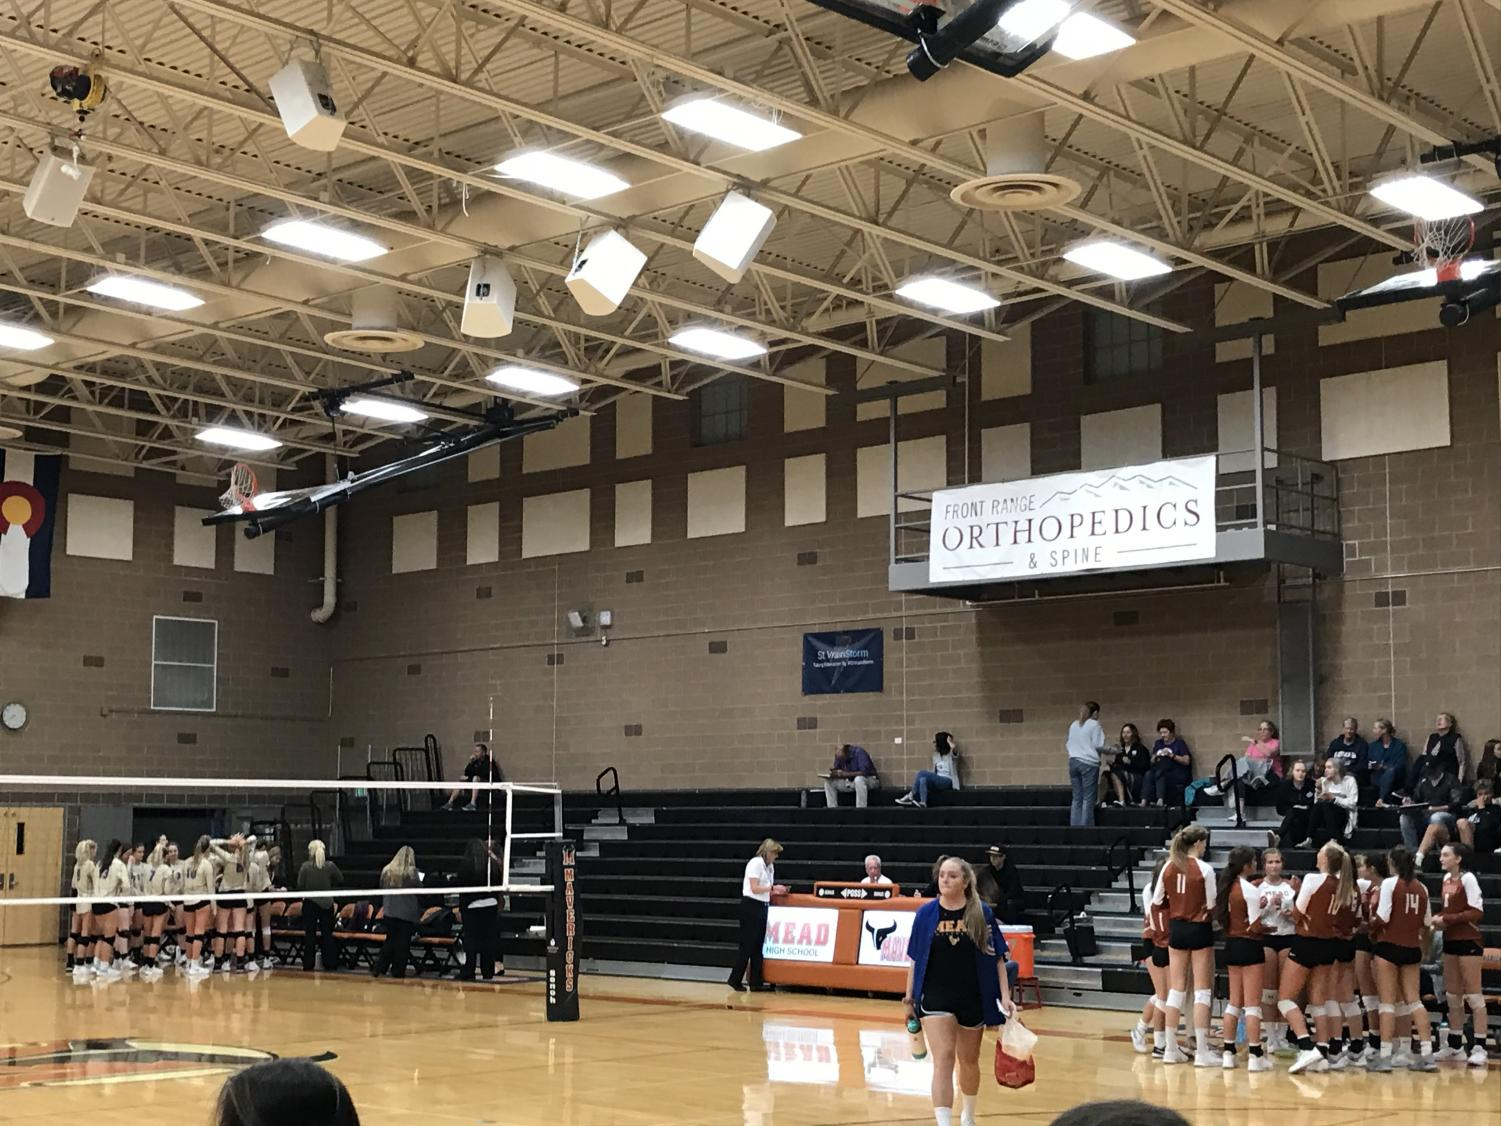 Volleyball game in Mead's main gym